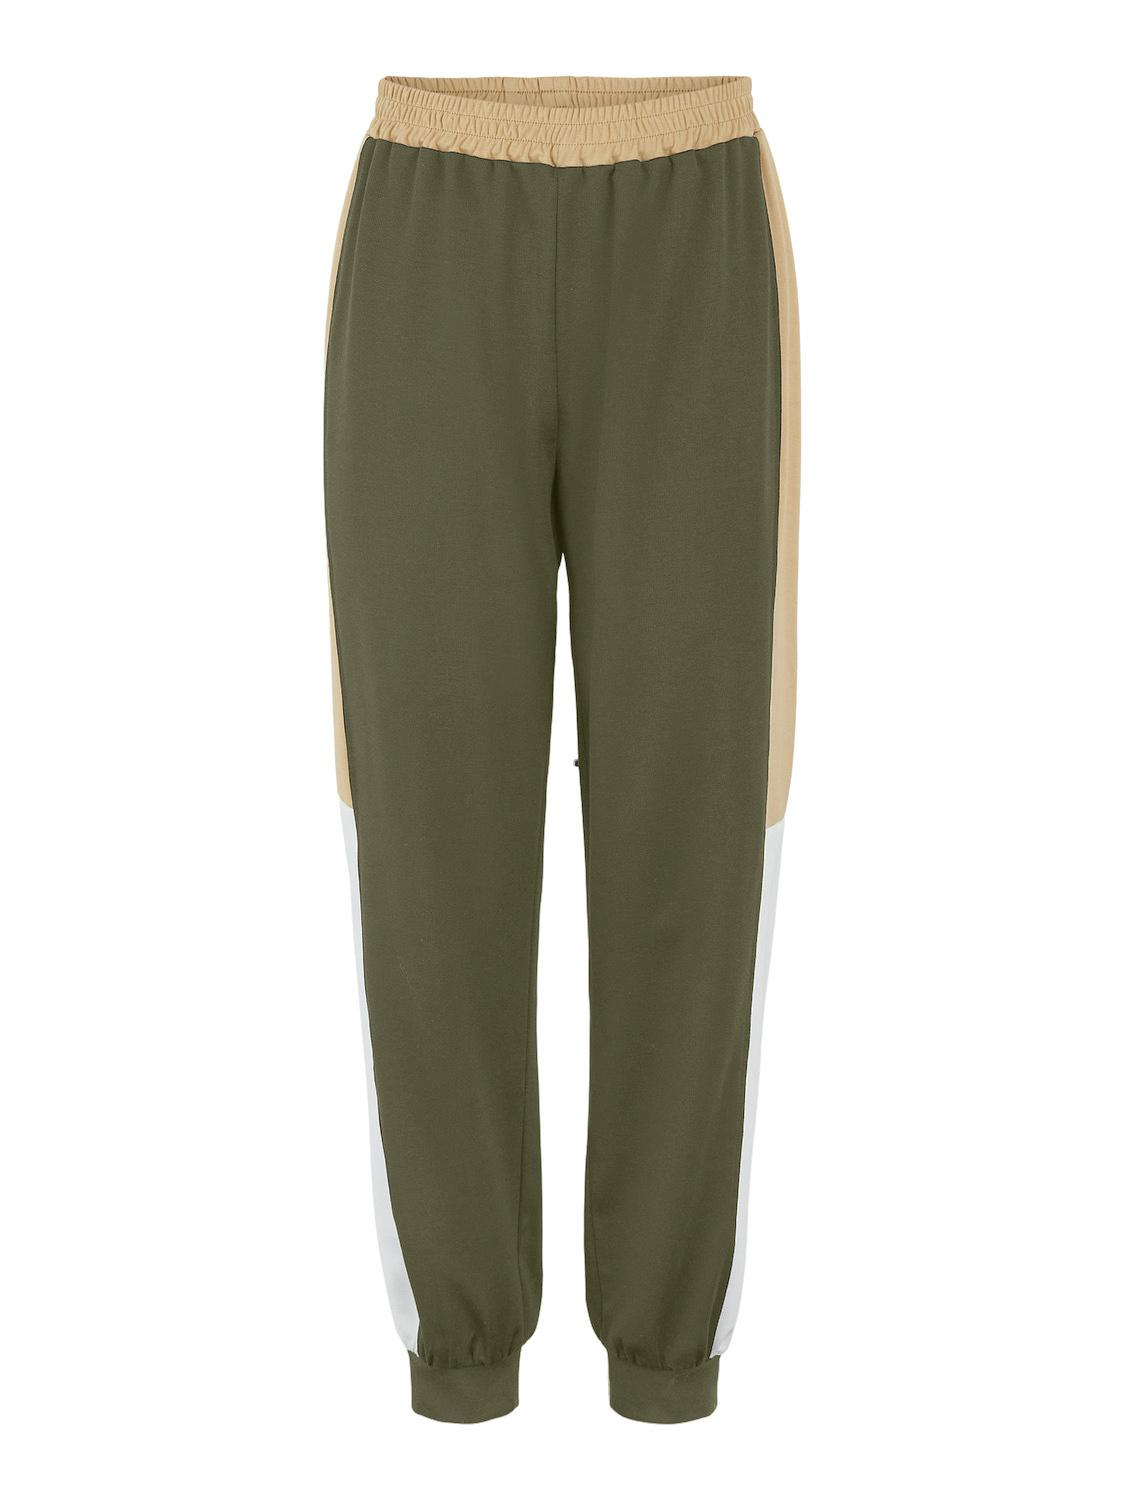 Pieces Maggya HW sweatpants, winter moss, x-small